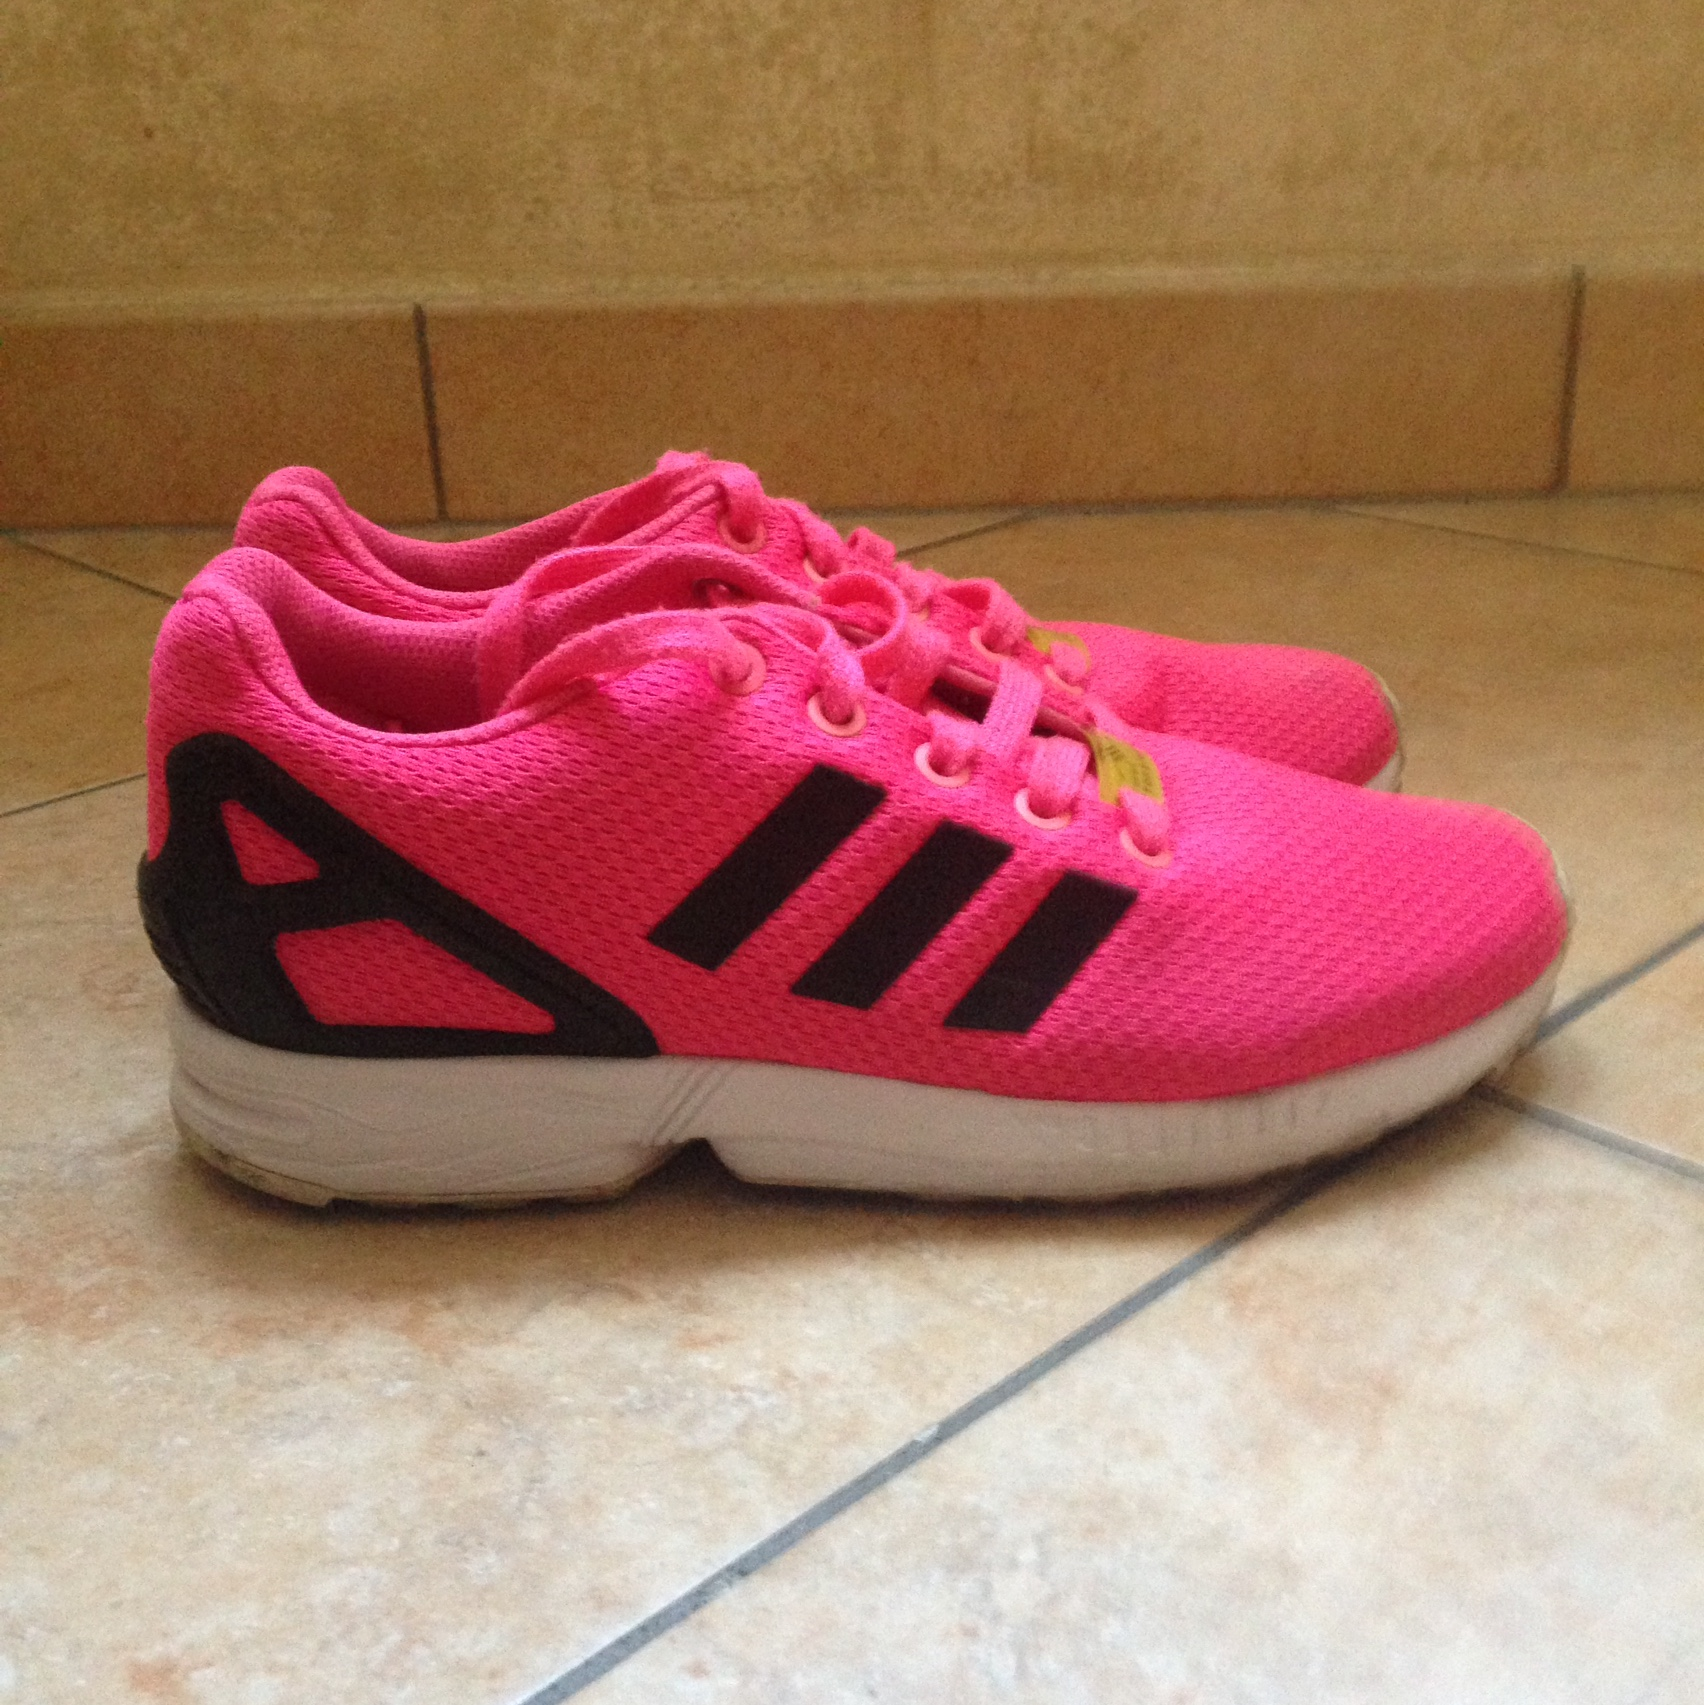 adidas rose fluo zx flux